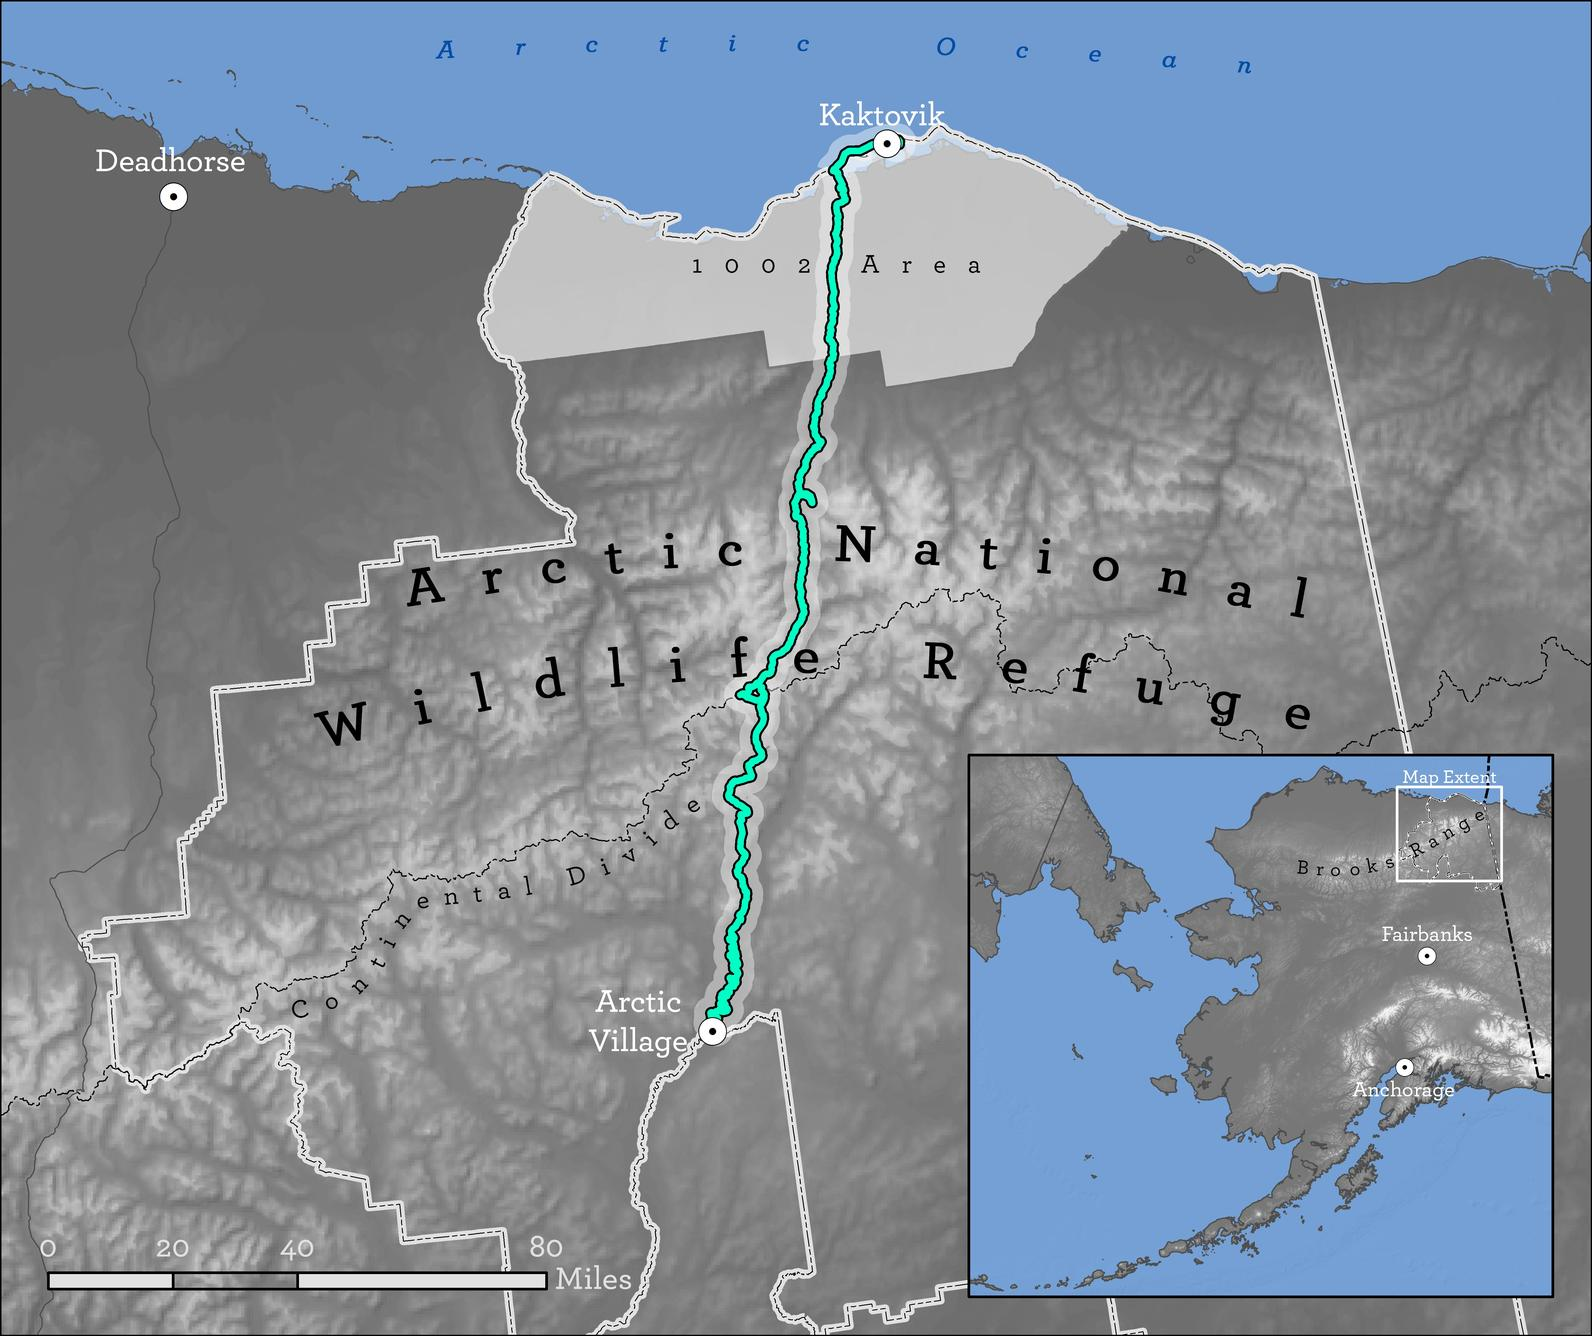 Ben and Sarah's route traversing the Arctic National Wildlife Refuge.